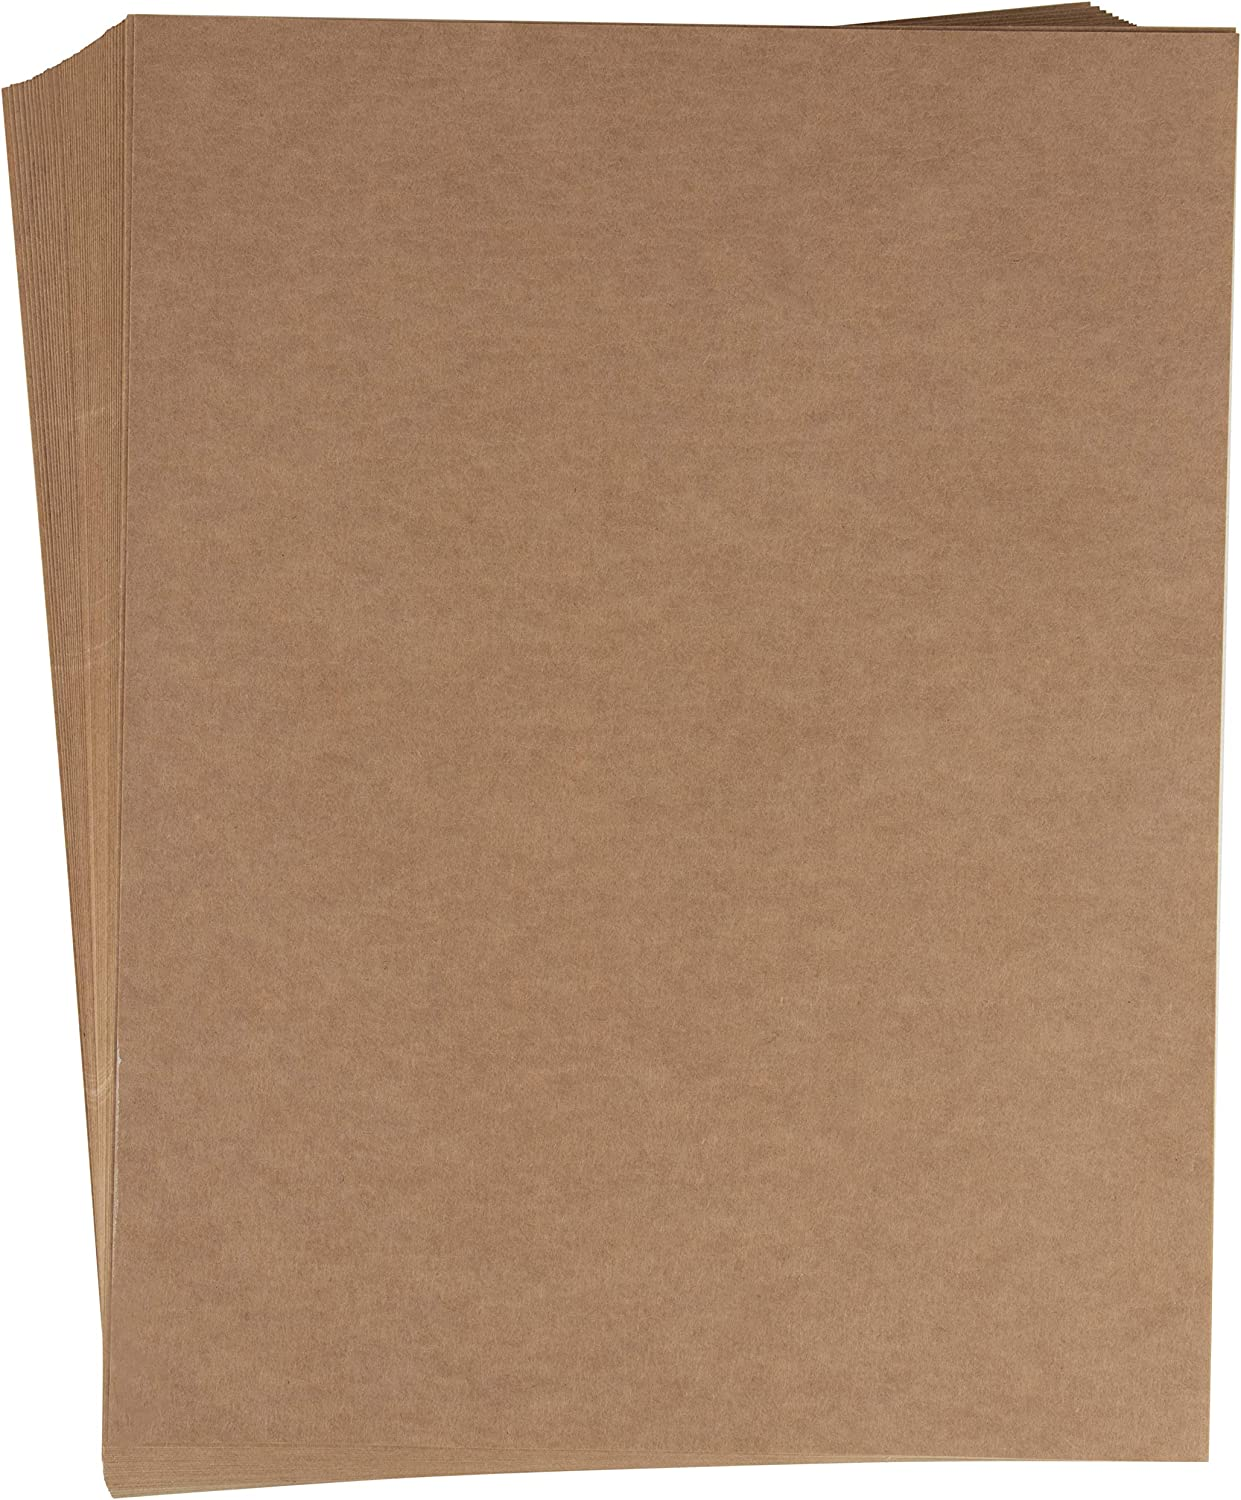 Juvale Kraft Label Sticker Sheets, Letter Size (8.5 x 11 in, Brown, 48-Pack)